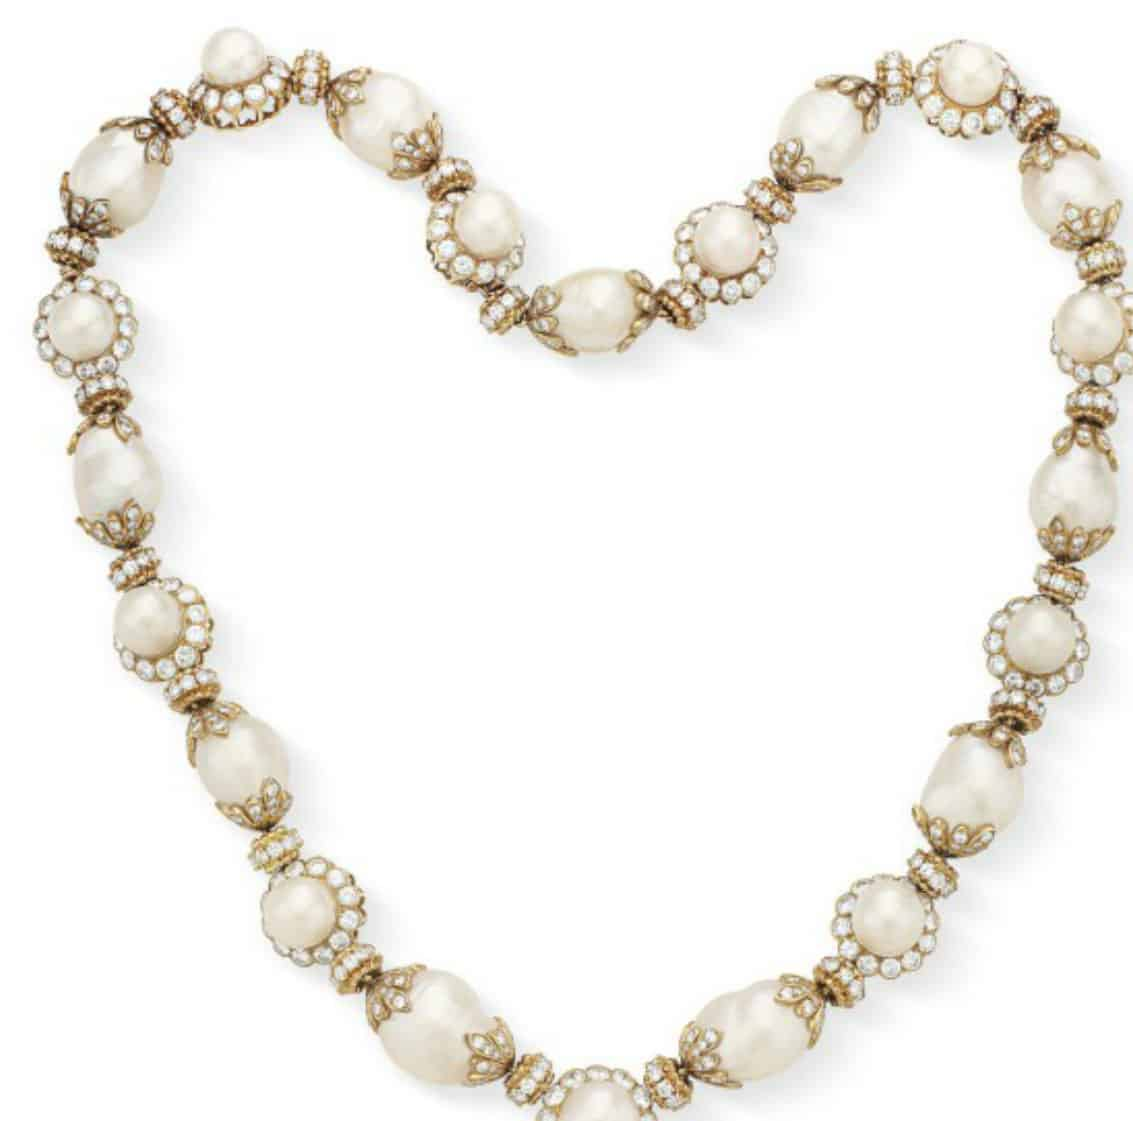 Lot 149  Neckchain of diamond and cultured pearl necklace by Van Clef & Arpels